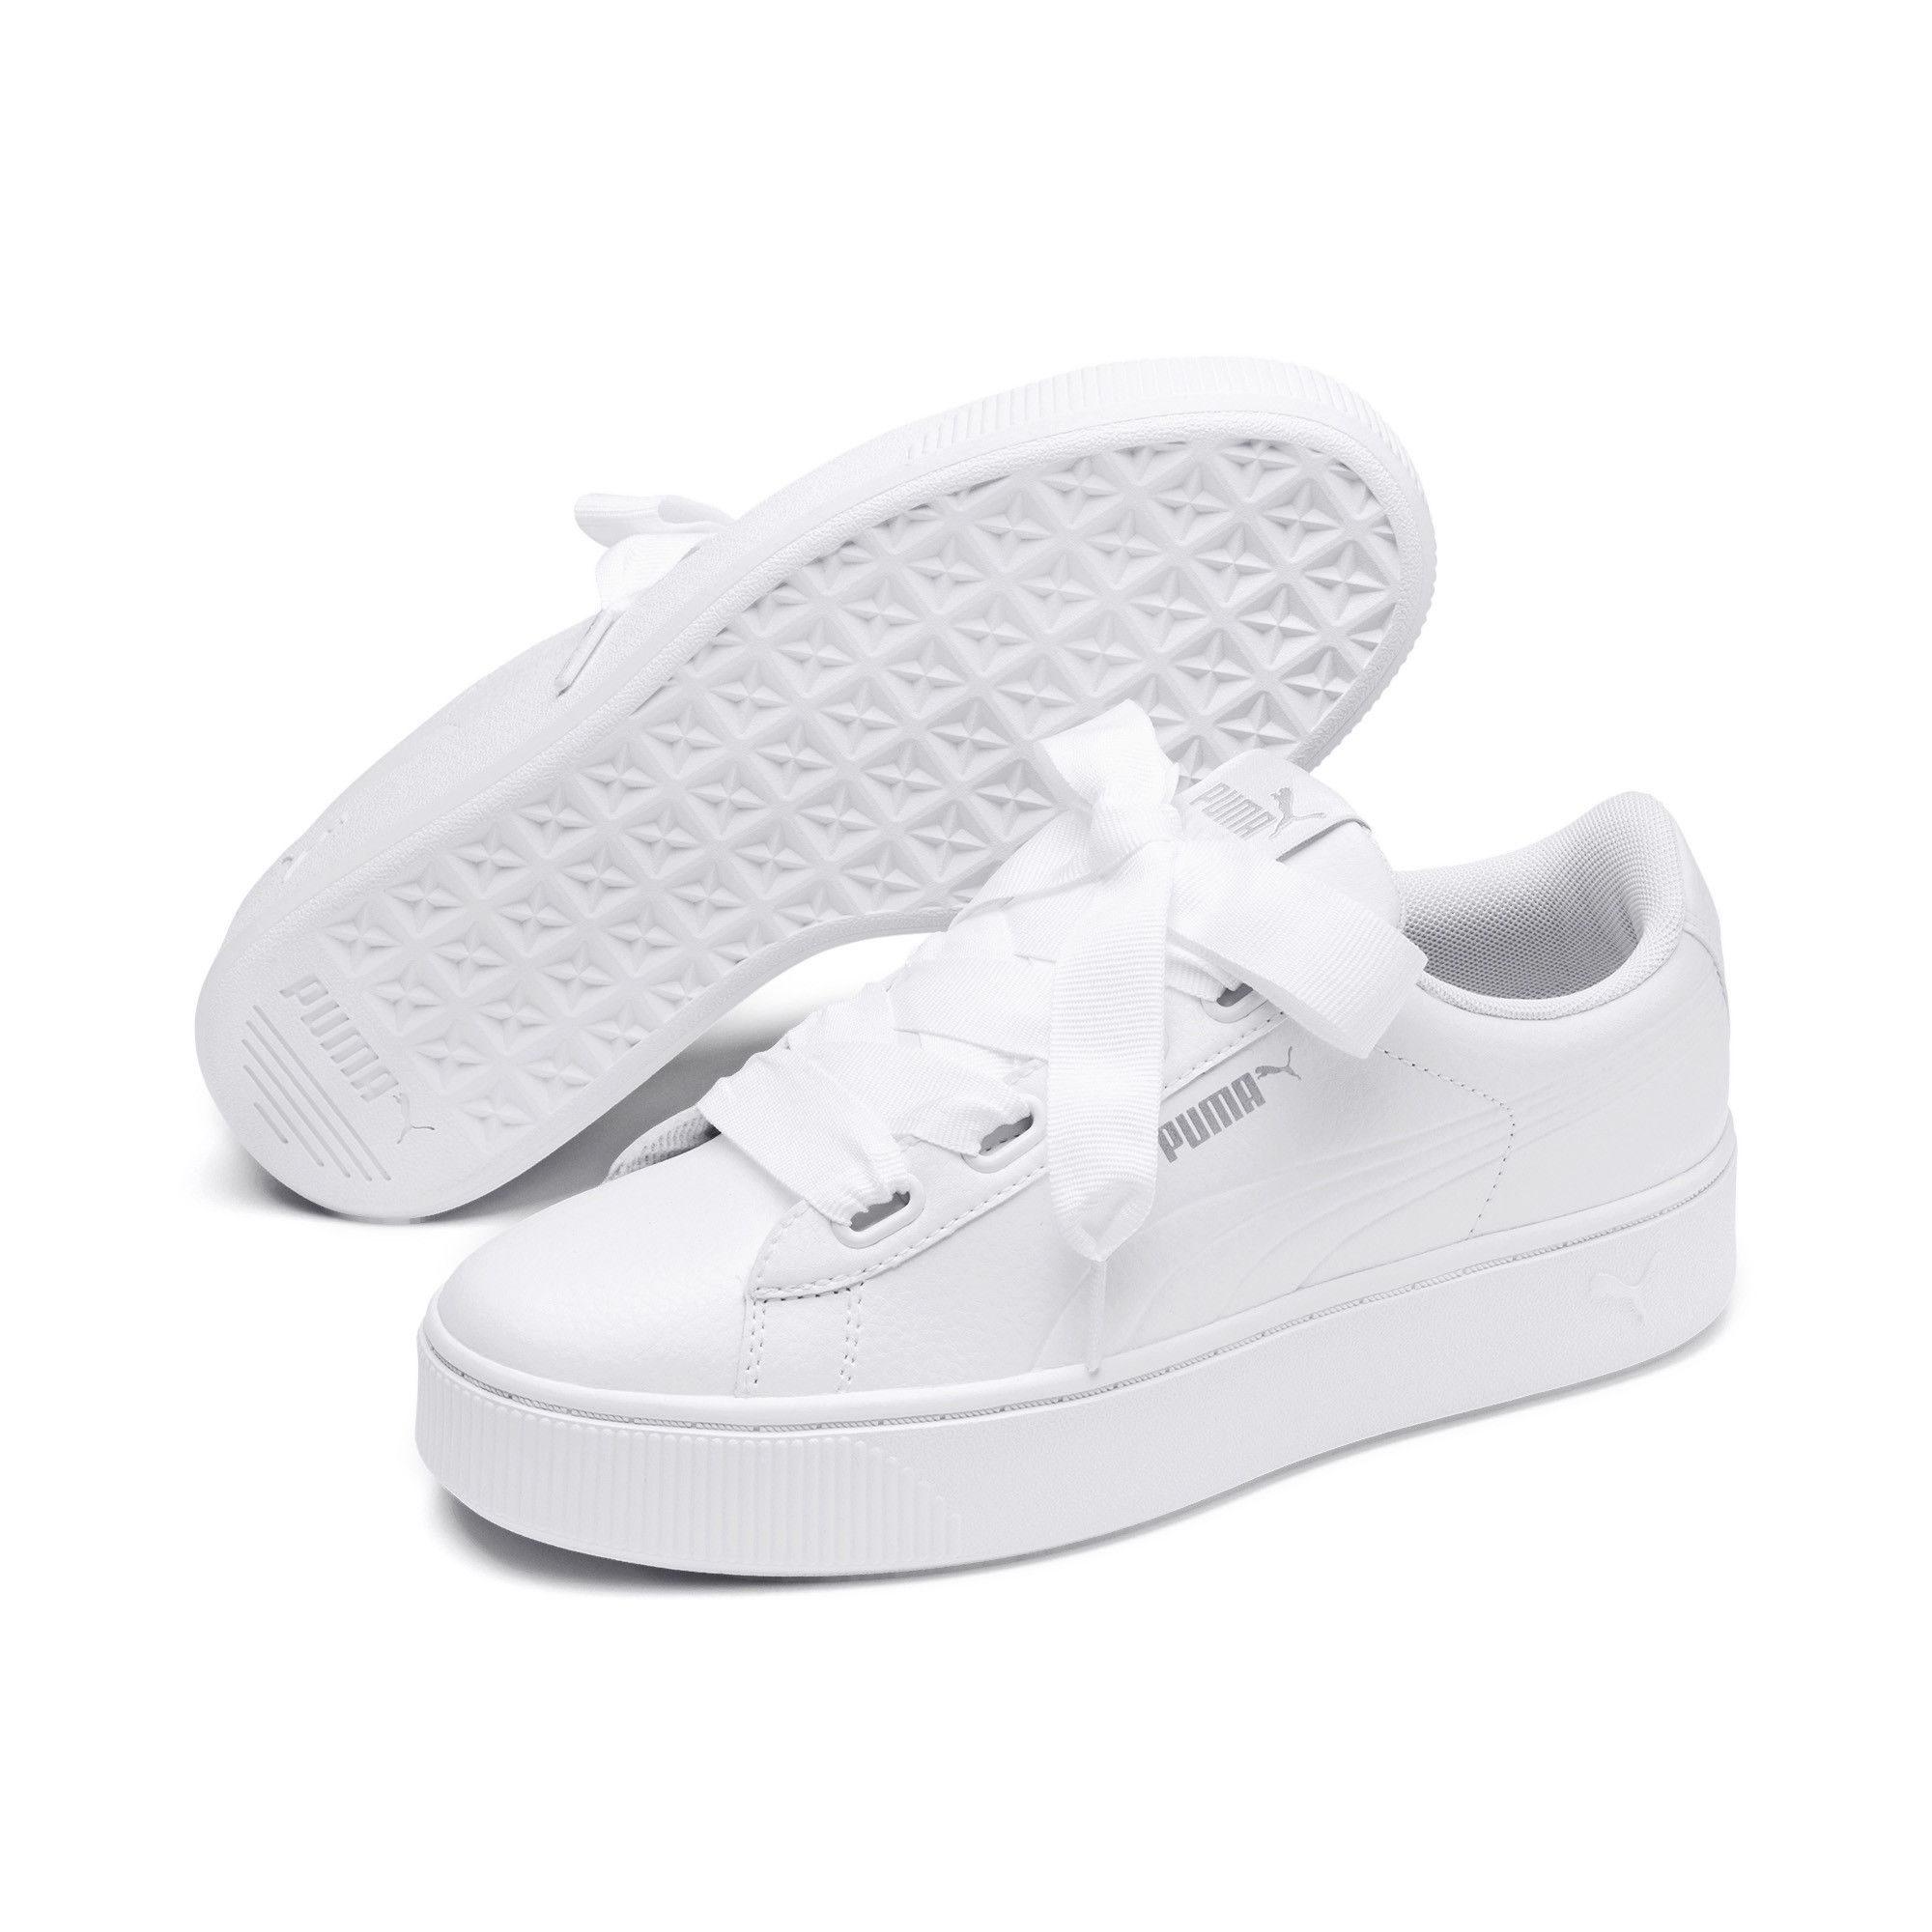 white shoes dream meaning